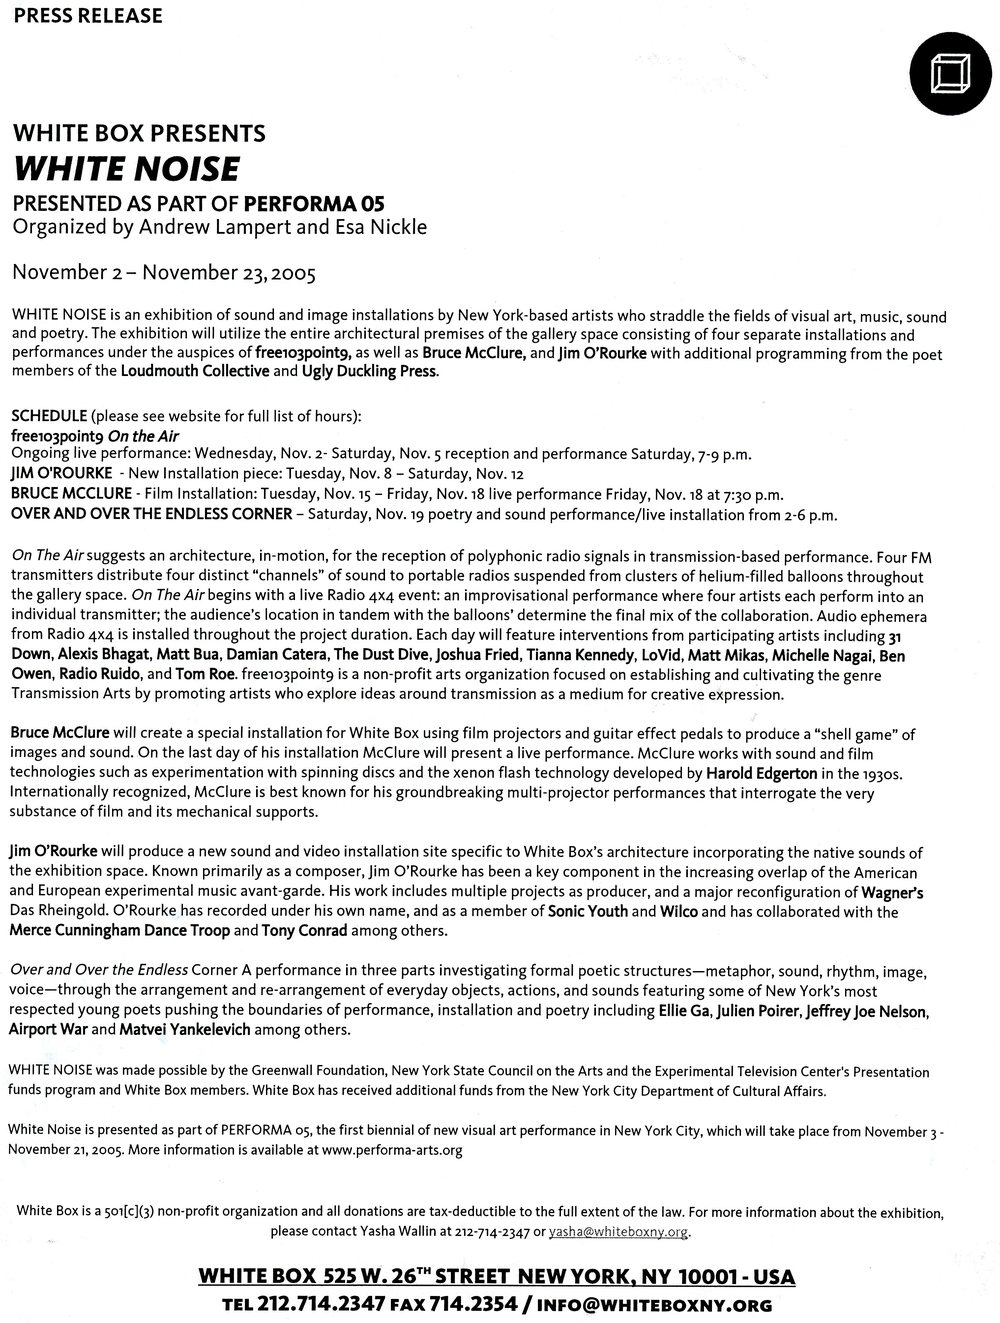 whitenoisepressrelease197.jpg